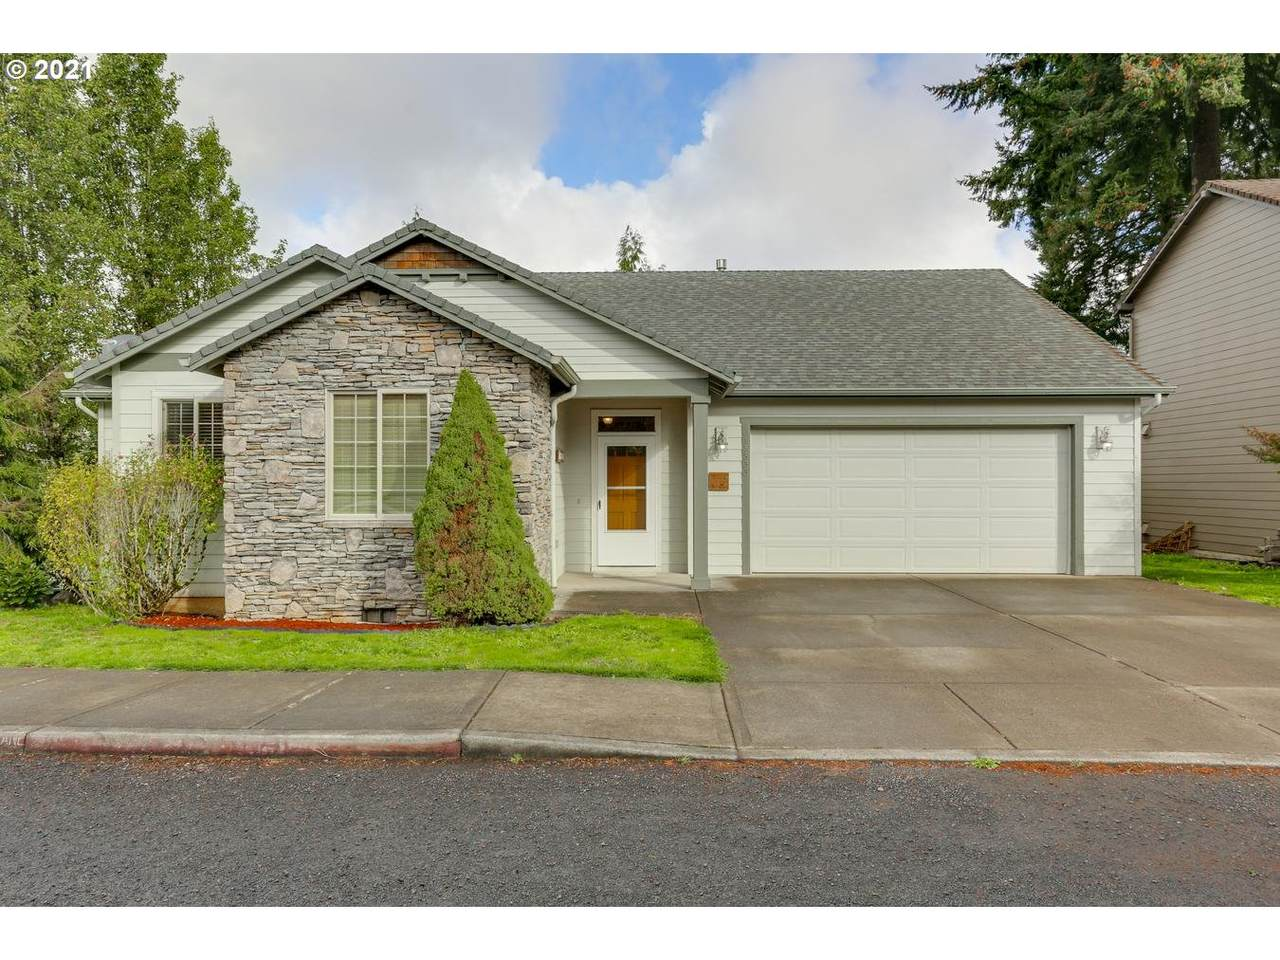 18533 White Tail Ave - Photo 1